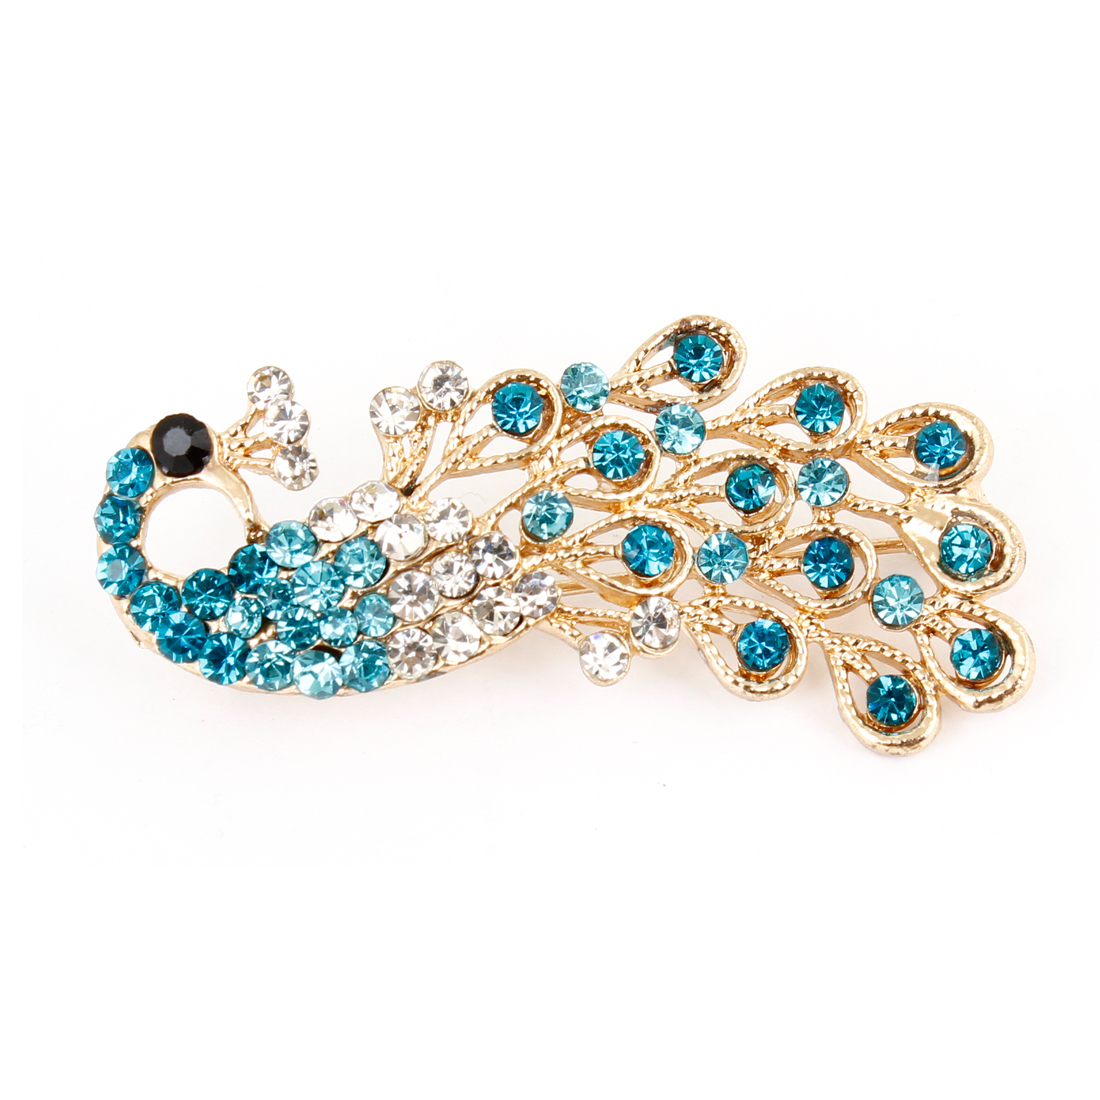 Lady Banquet Teal Blue Rhinestone Peacock Design Safety Pin Brooch